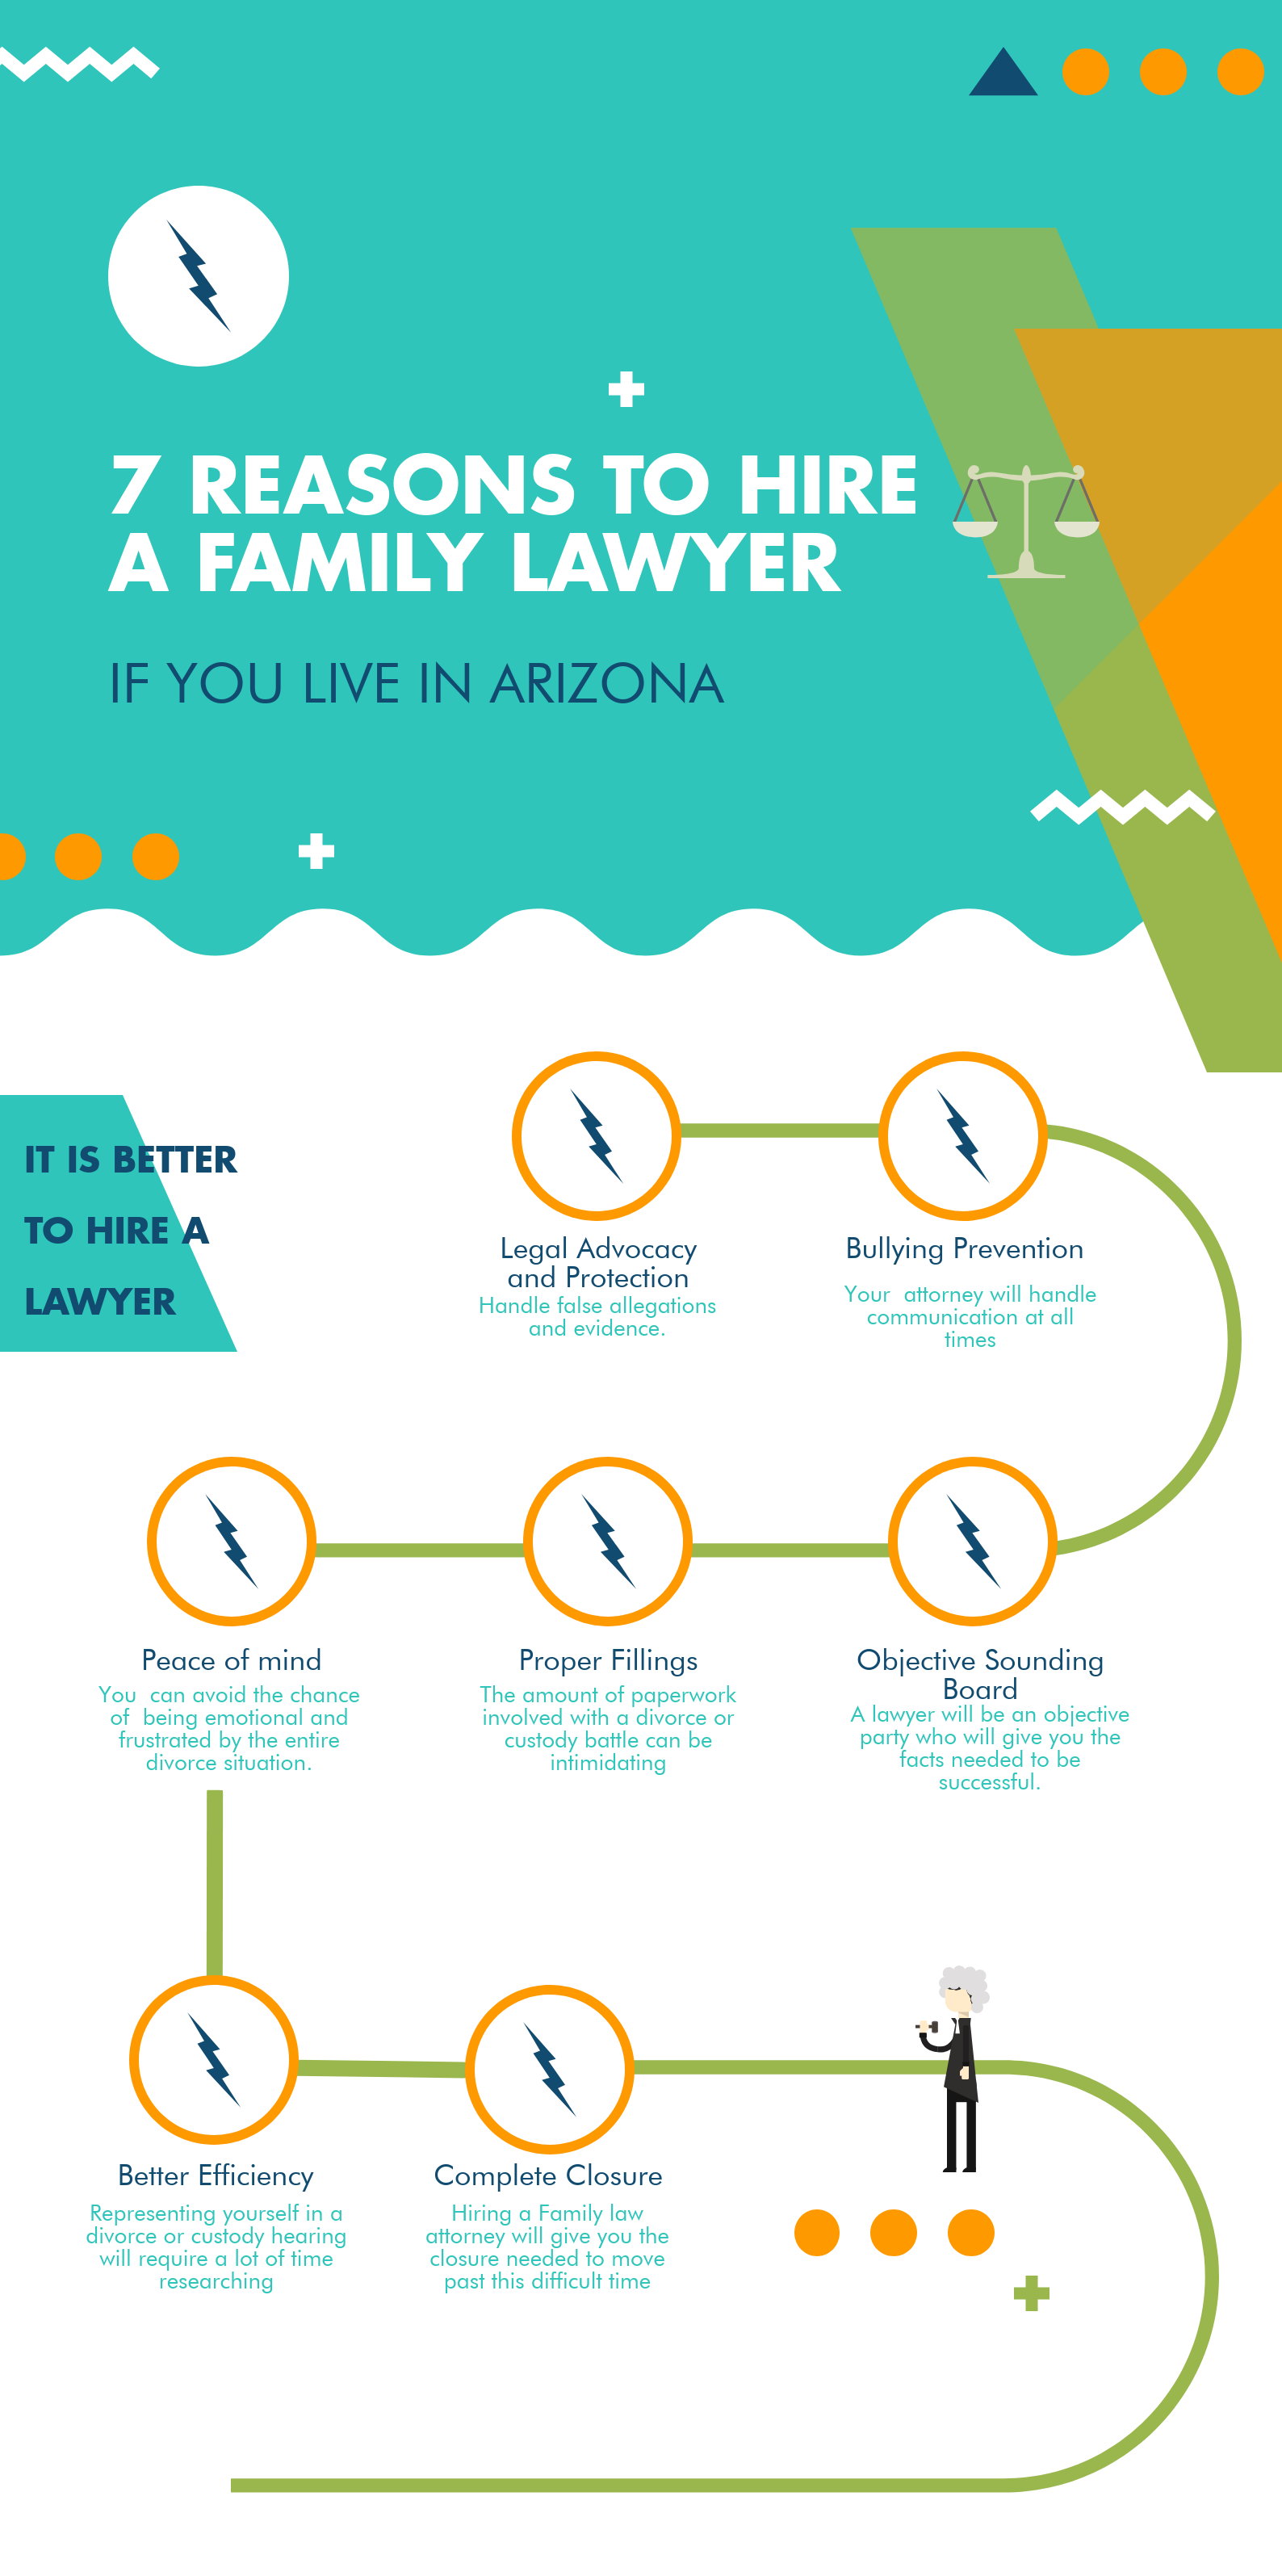 reasons to hire an Arizona lawyer [infogrphic]